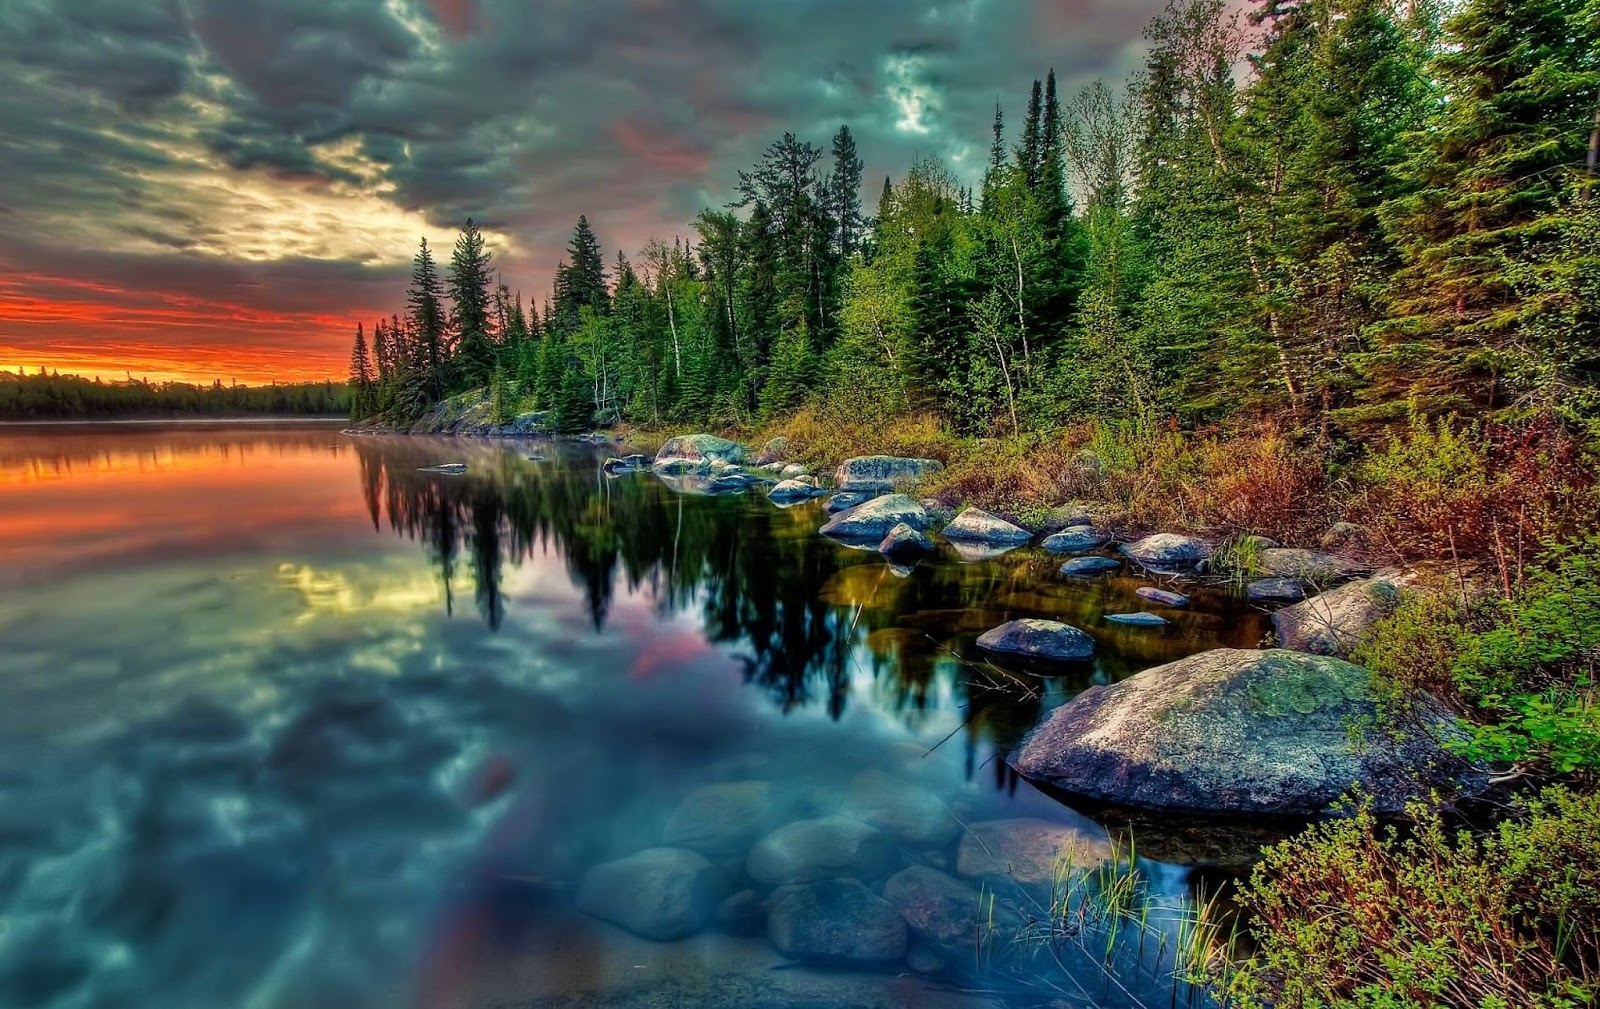 hd wallpapers 1080p nature - photo #9